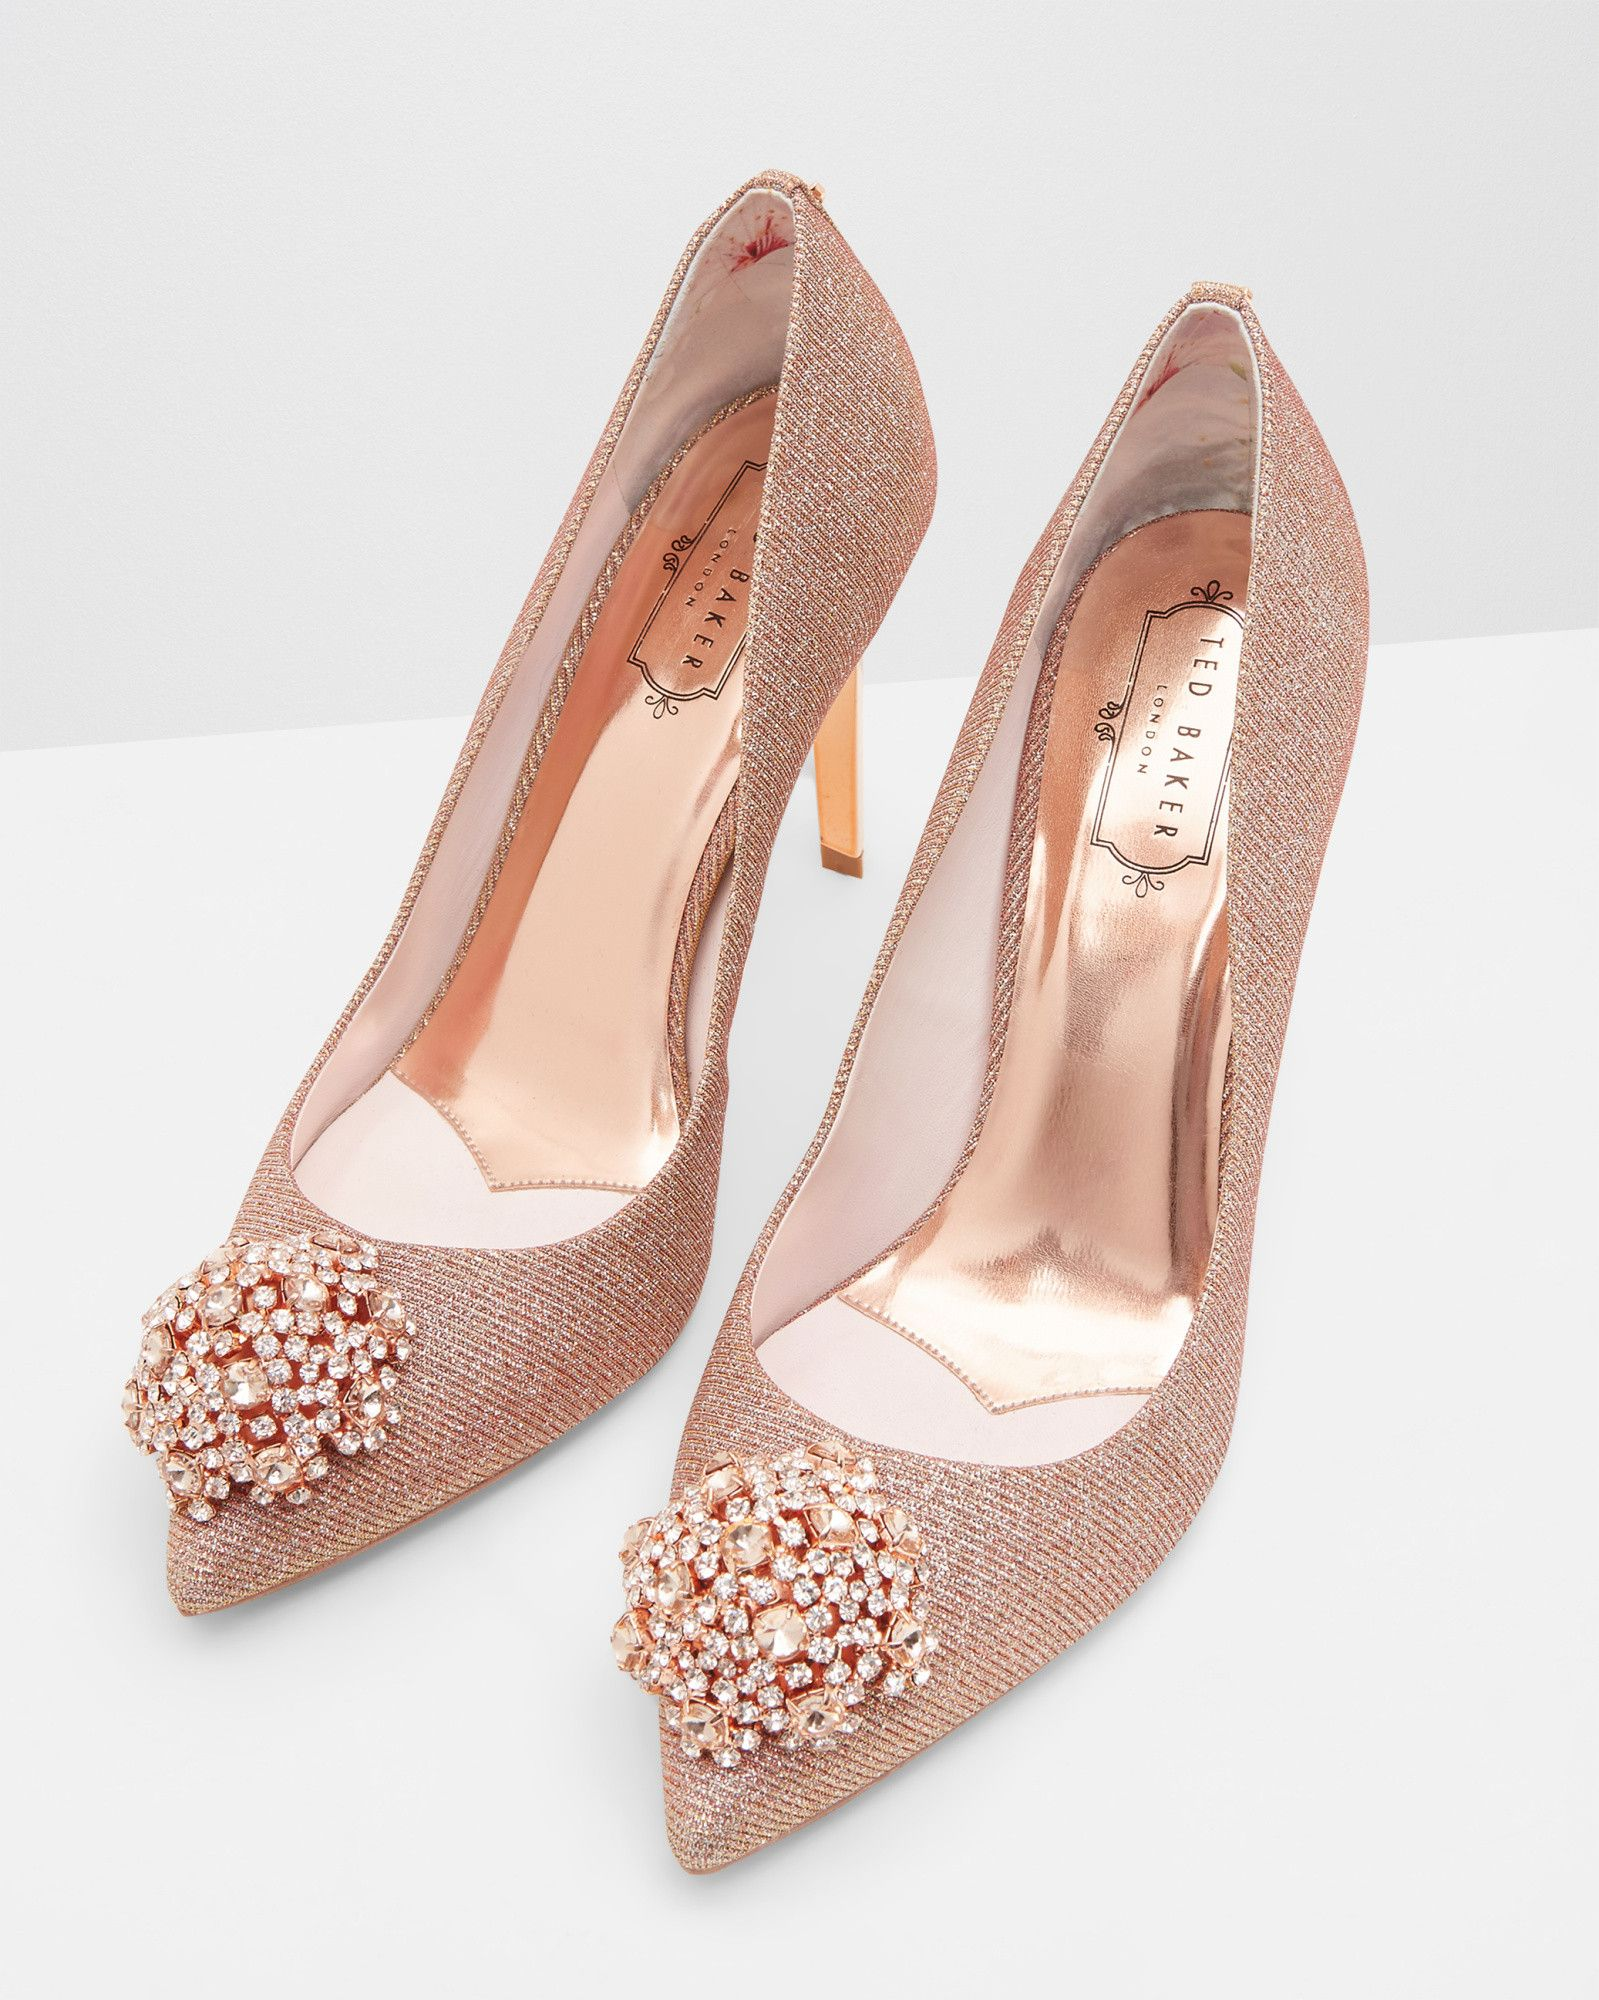 64ef012c5 PEETCH brooch detail court shoe in Rose Gold by Ted Baker. Beautiful ❤   WedWithTed  tedbaker